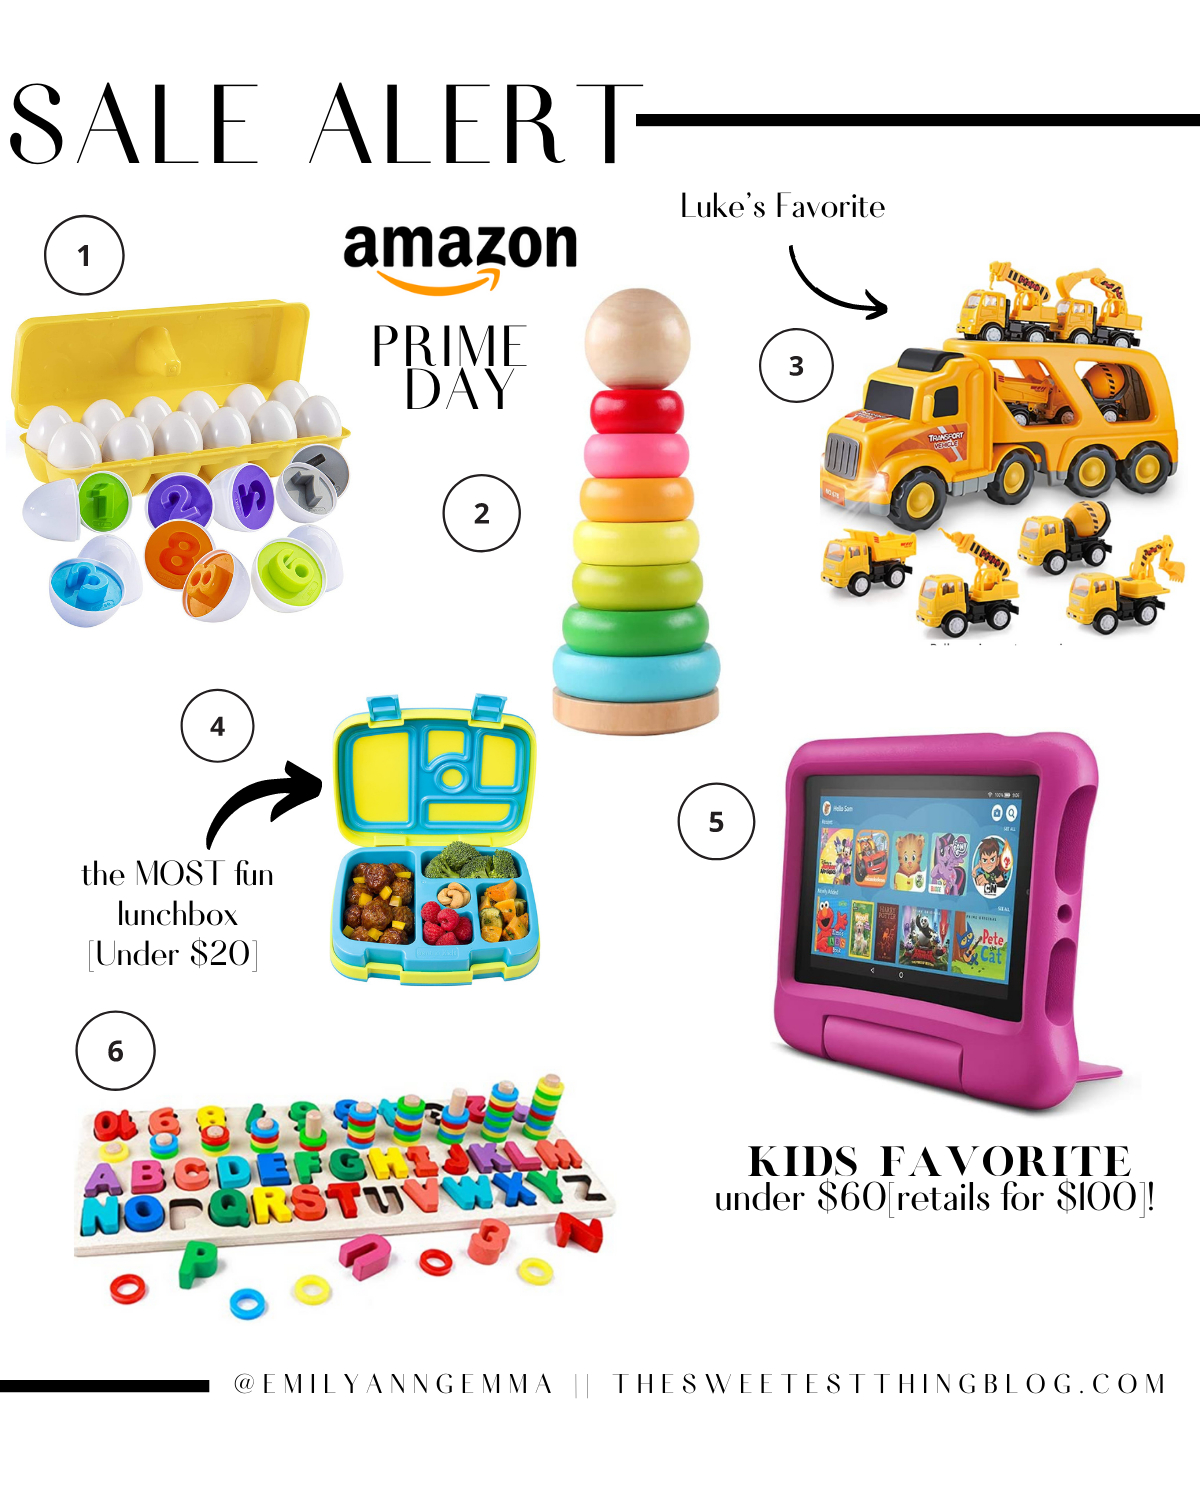 Prime Day by popular US life and style blog, The Sweetest Thing: collage image of Amazon kindle, bento box, alphabet puzzle, stacking rings, construction trucks, and Stem learning eggs.